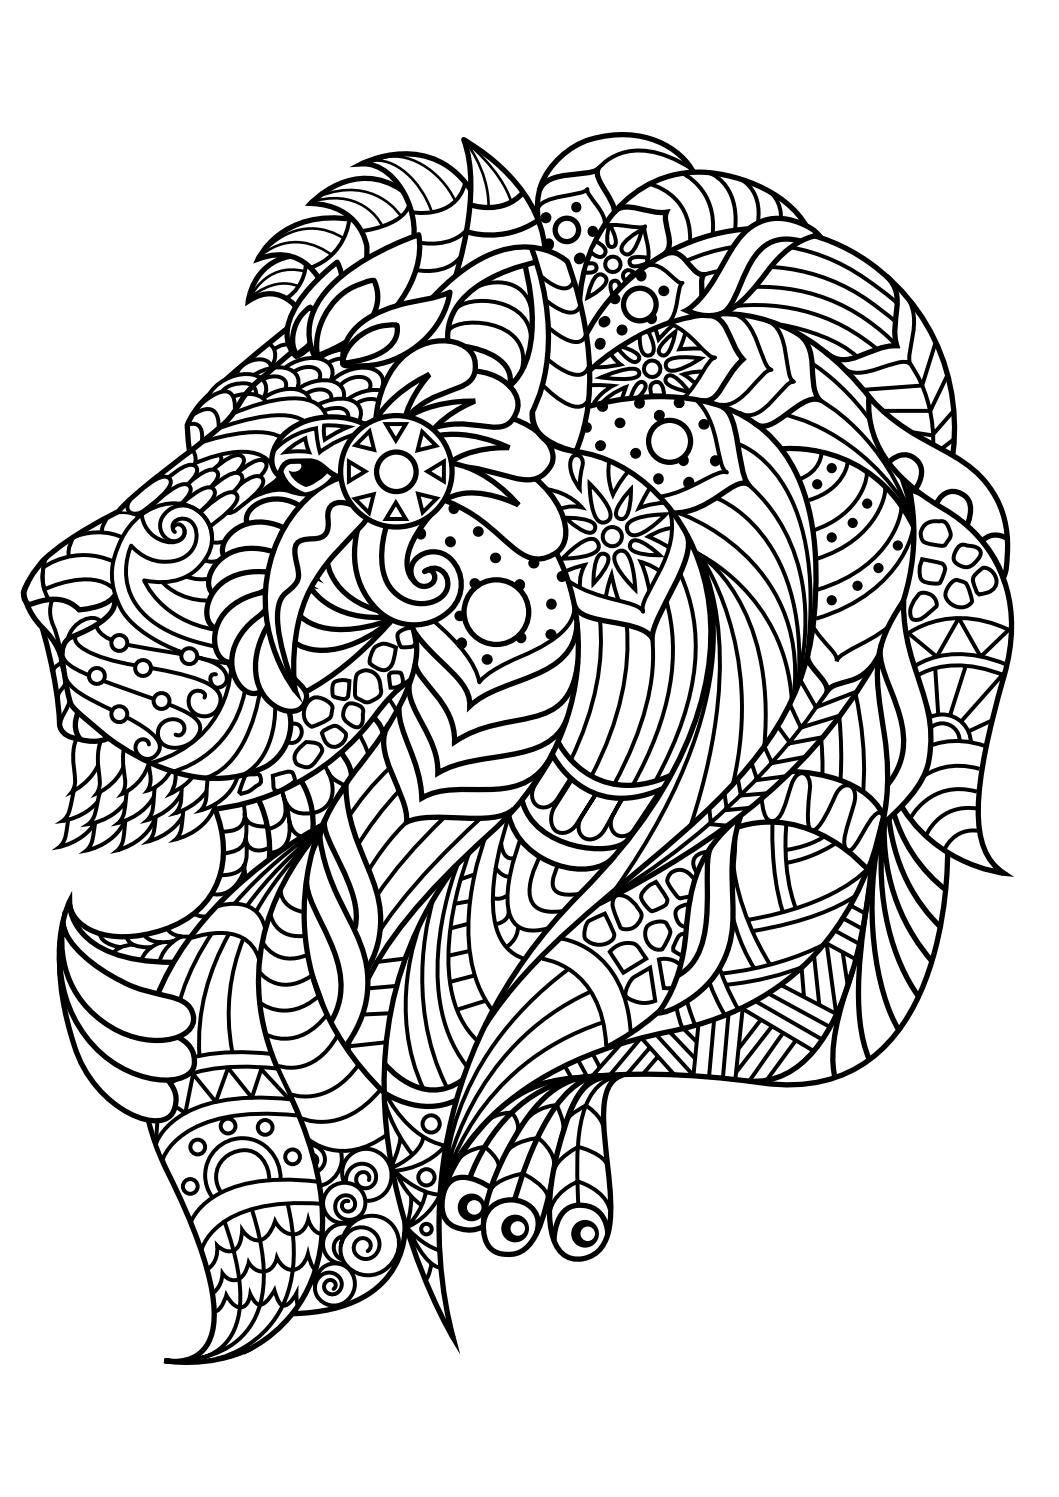 Best ideas about Animal Free Printable Coloring Sheets . Save or Pin Animal coloring pages pdf Coloring Animals Now.